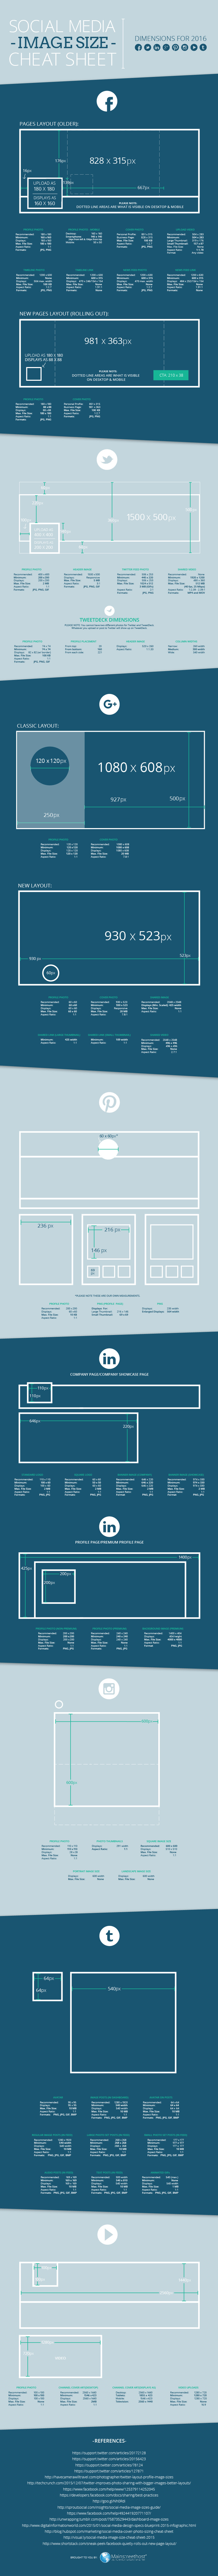 A comprehensive, up-to-date collection of social media image dimensions (in an infographic) you won't find anywhere else